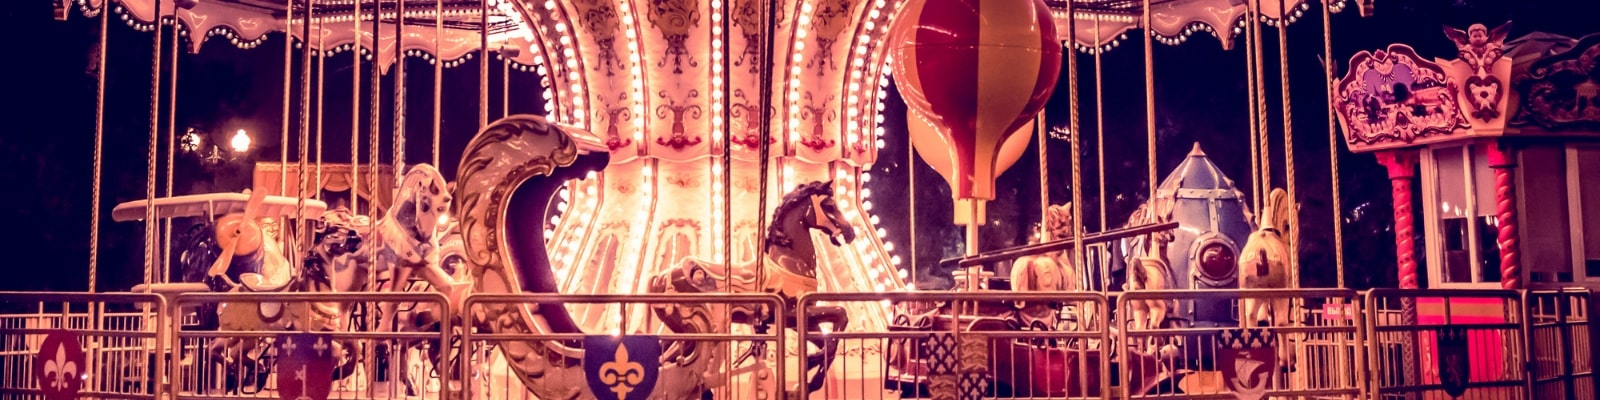 https://www.airfield.ie/wp-content/uploads/2019/08/Victorian-Carousel-at-Airfield-Estate-min.jpg